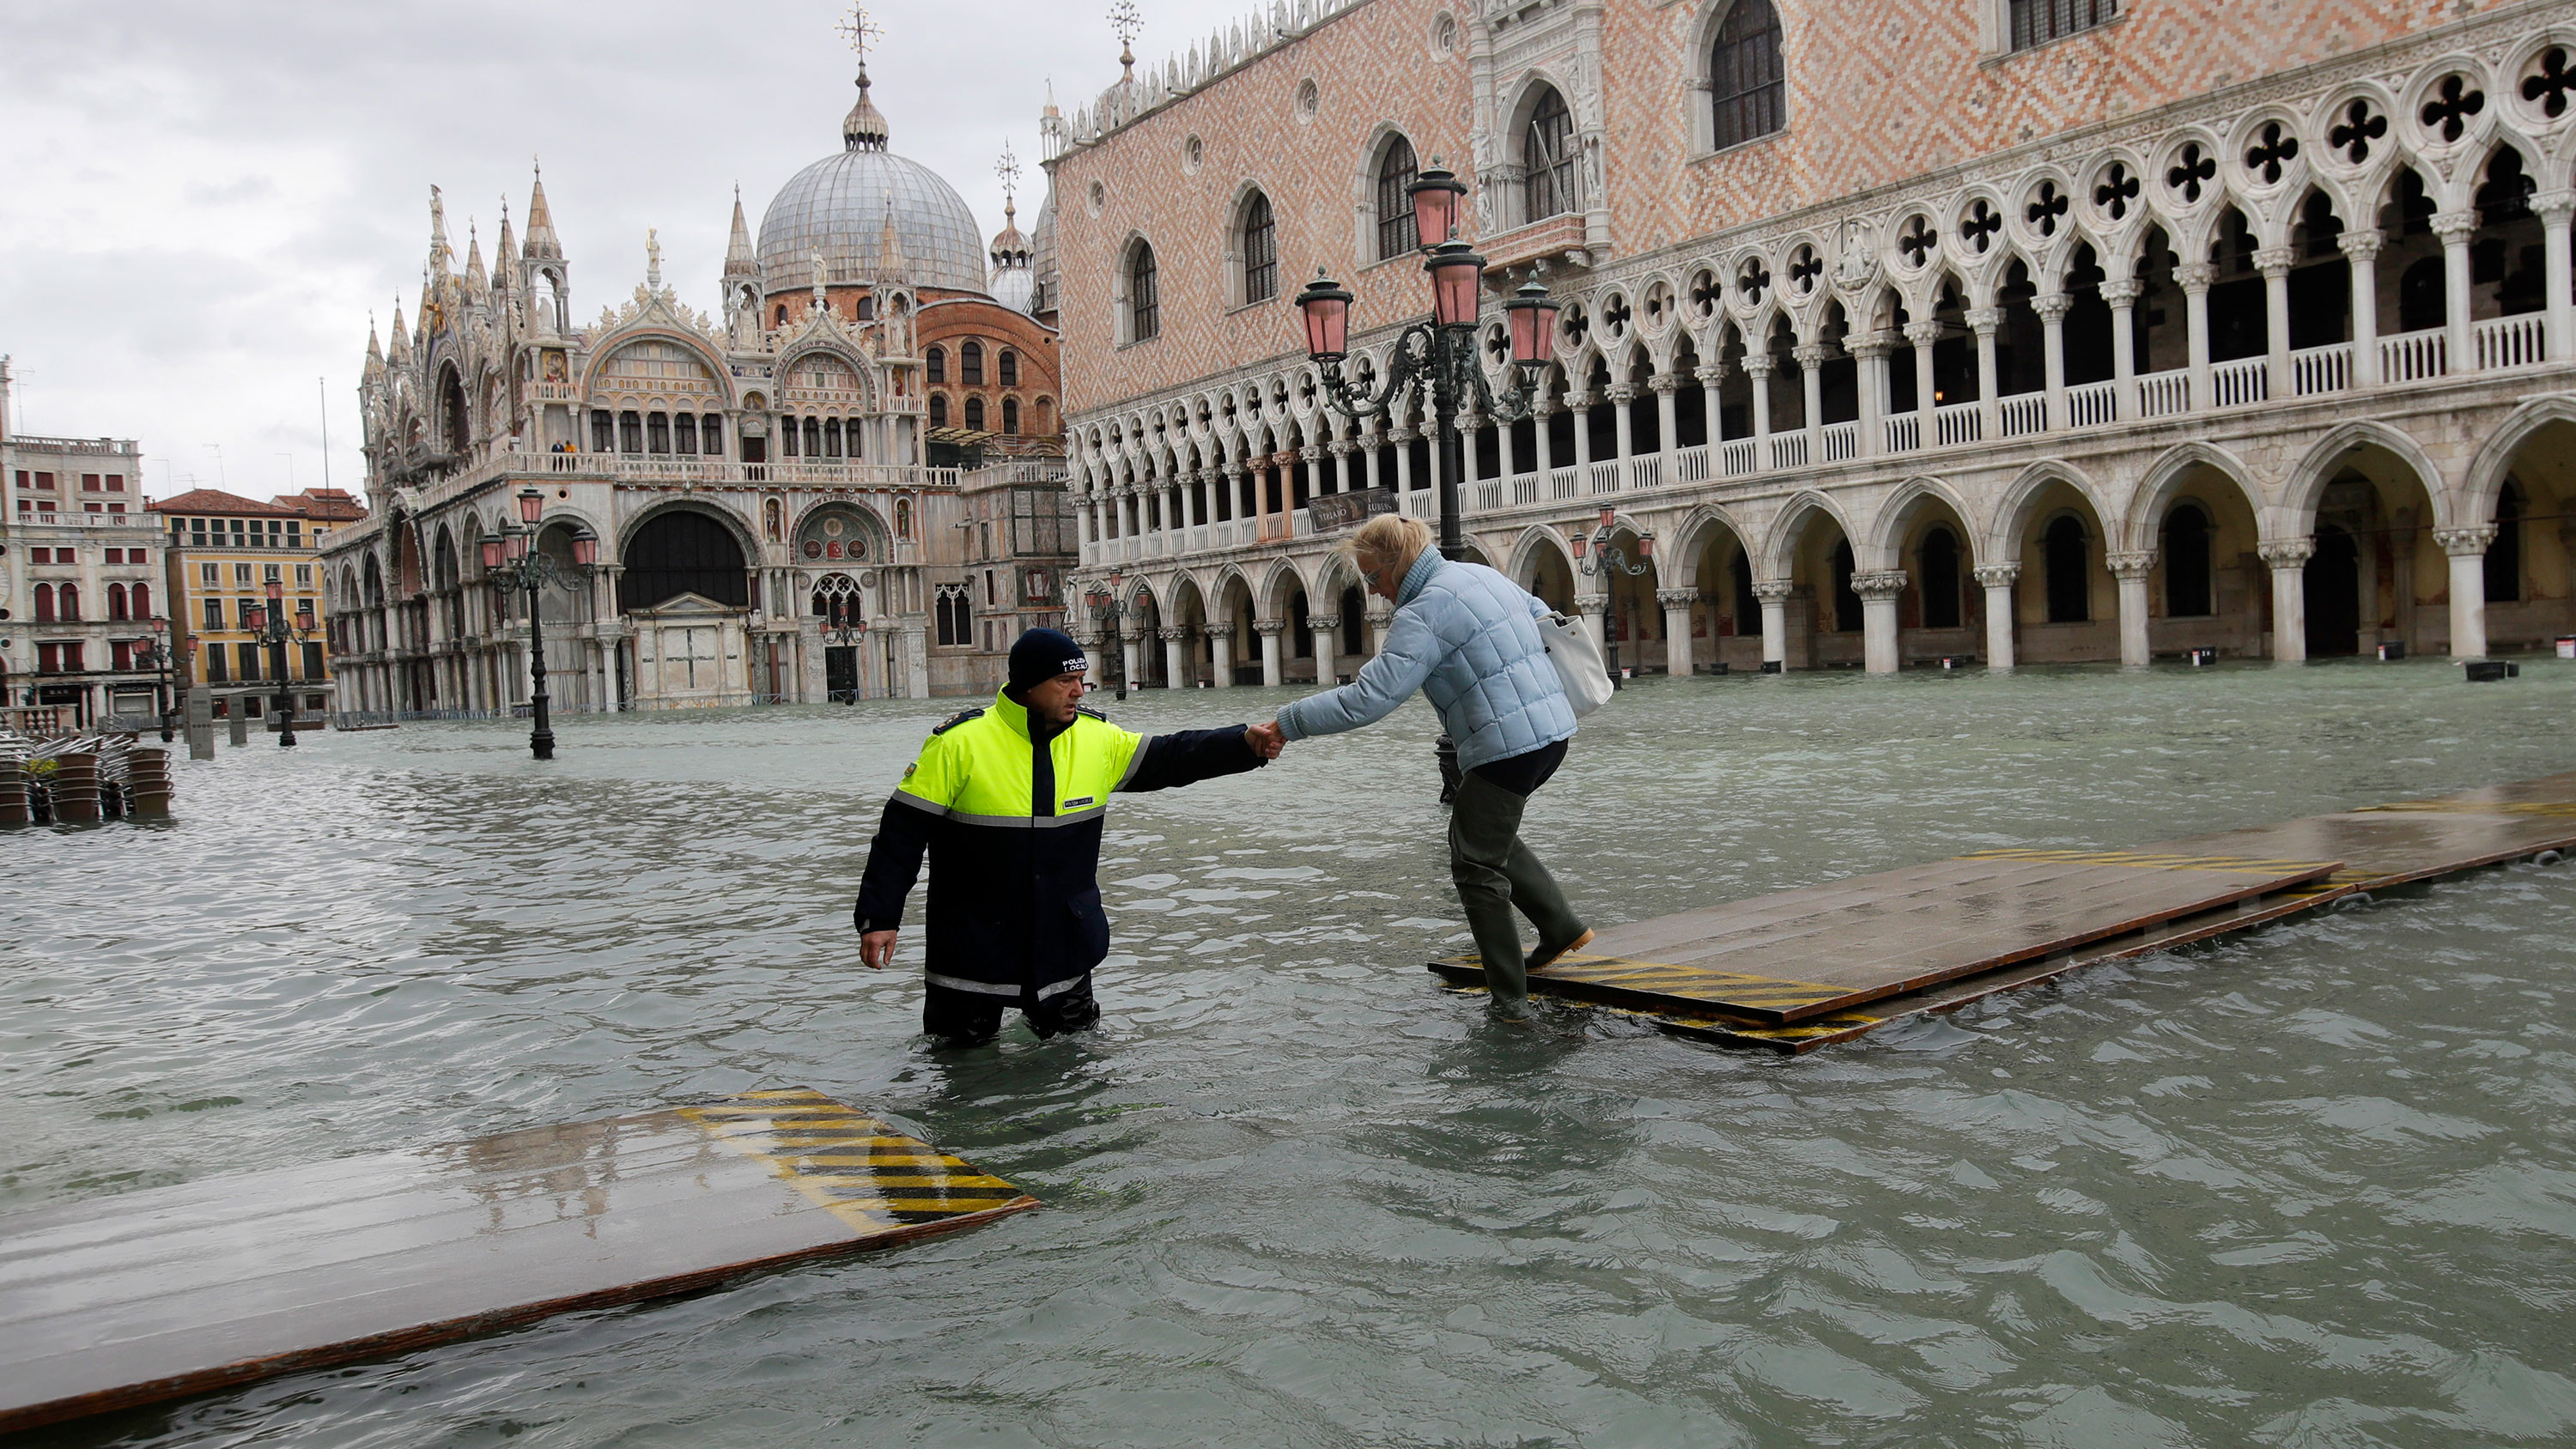 Studio La Rosa Palermo visiting venice after the floods: tourist shares her first